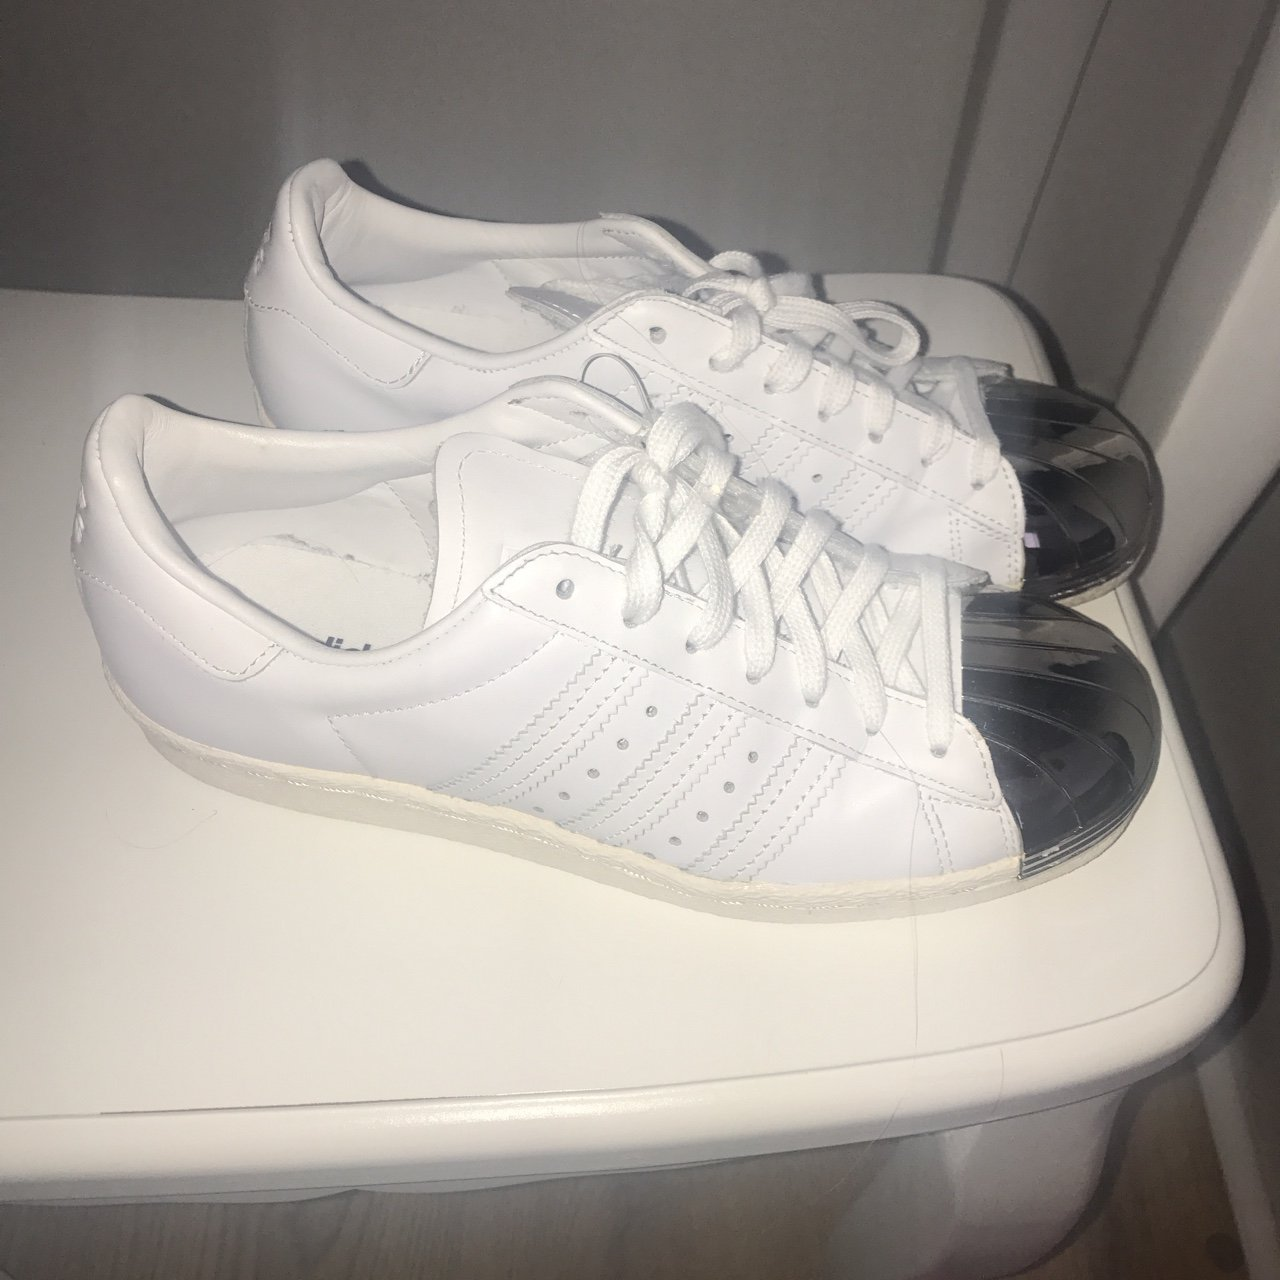 Adidas superstars. Silver toe cap. Never worn. Brand new. 4. - Depop 798cc0bc0